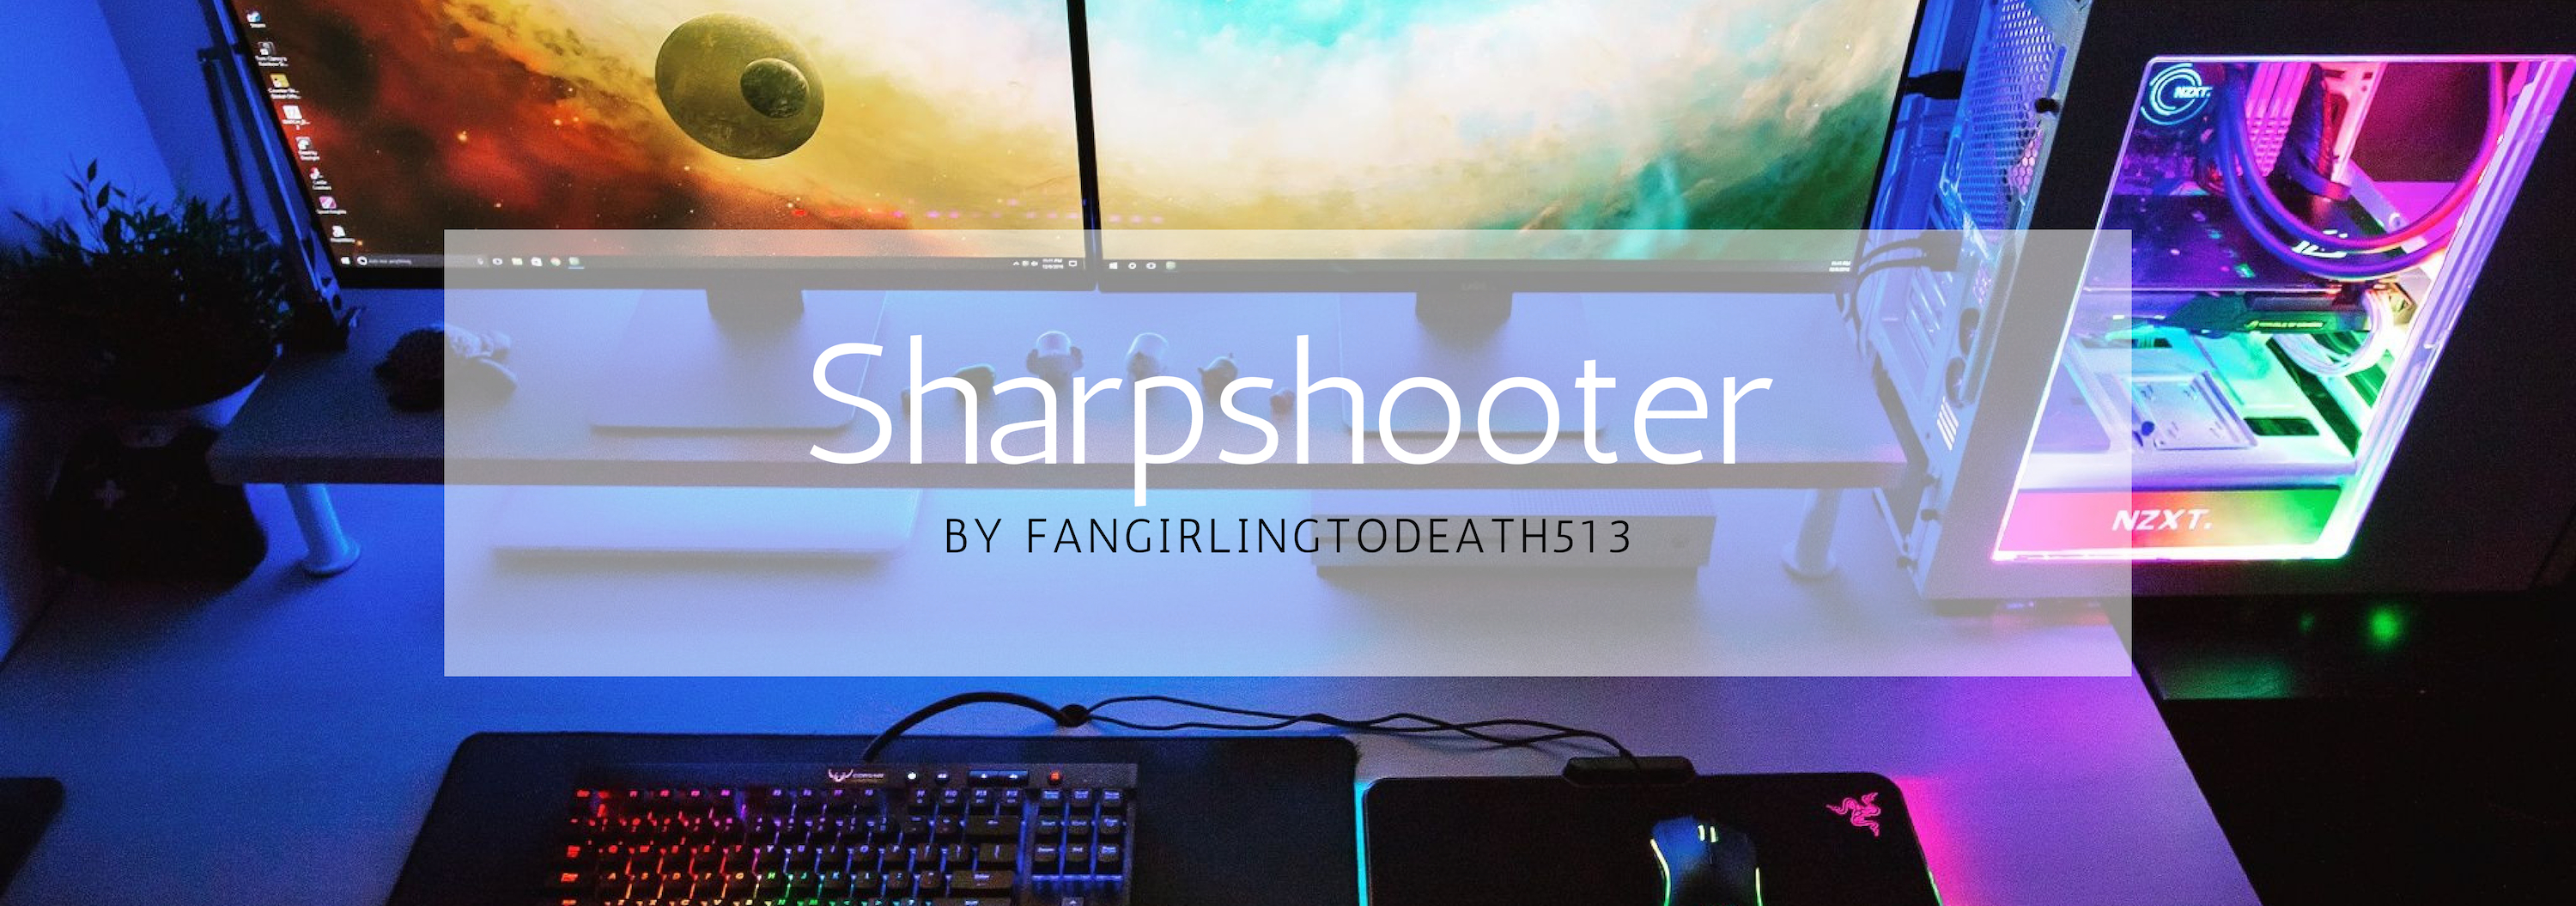 An image of a PC gaming setup with a transparent white square containing Sharpshooter by fangirlingtodeath513